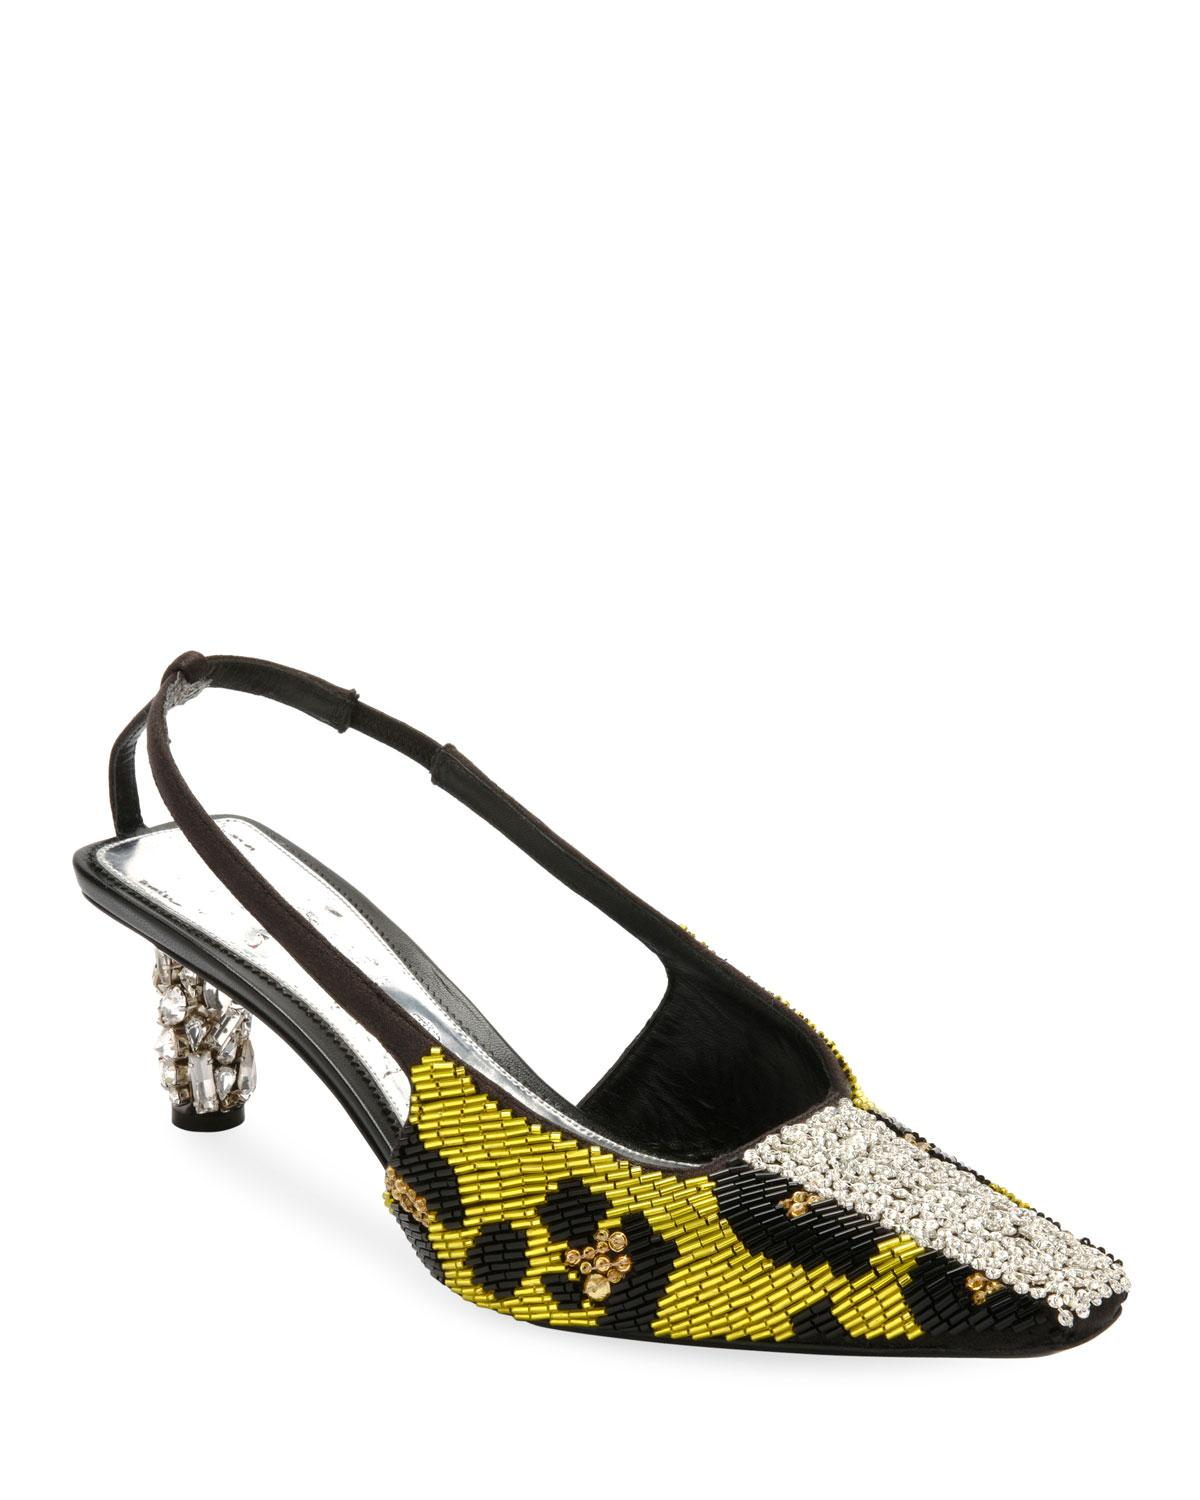 7c0a57f2a987 Lyst - Tom Ford Leopard-beaded Slingback Pumps in Black